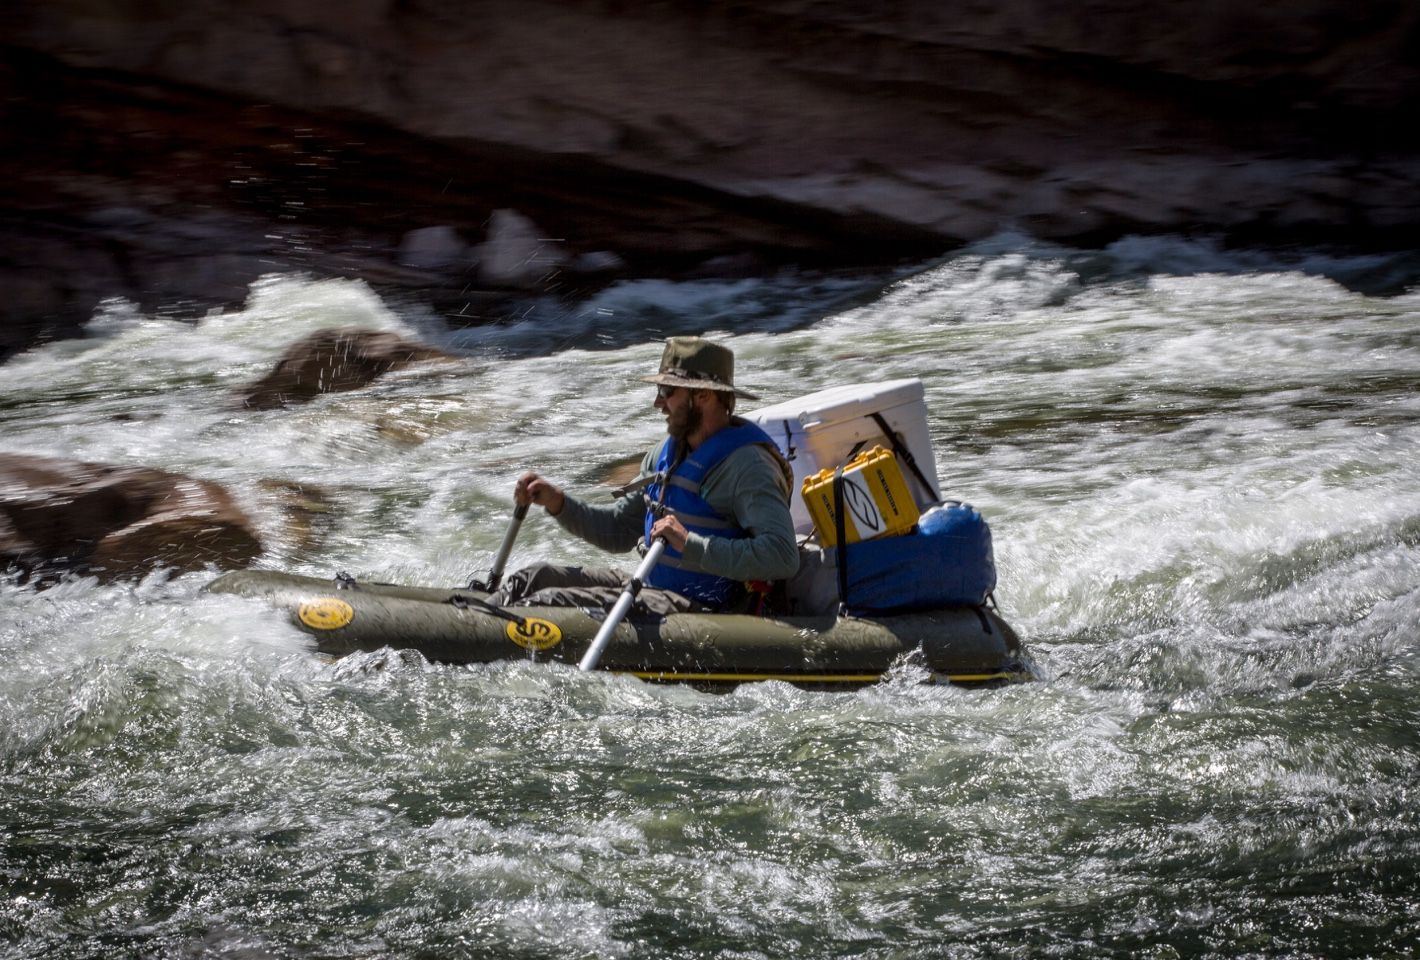 Cavin navigating the Red Creek rapid like a boss.